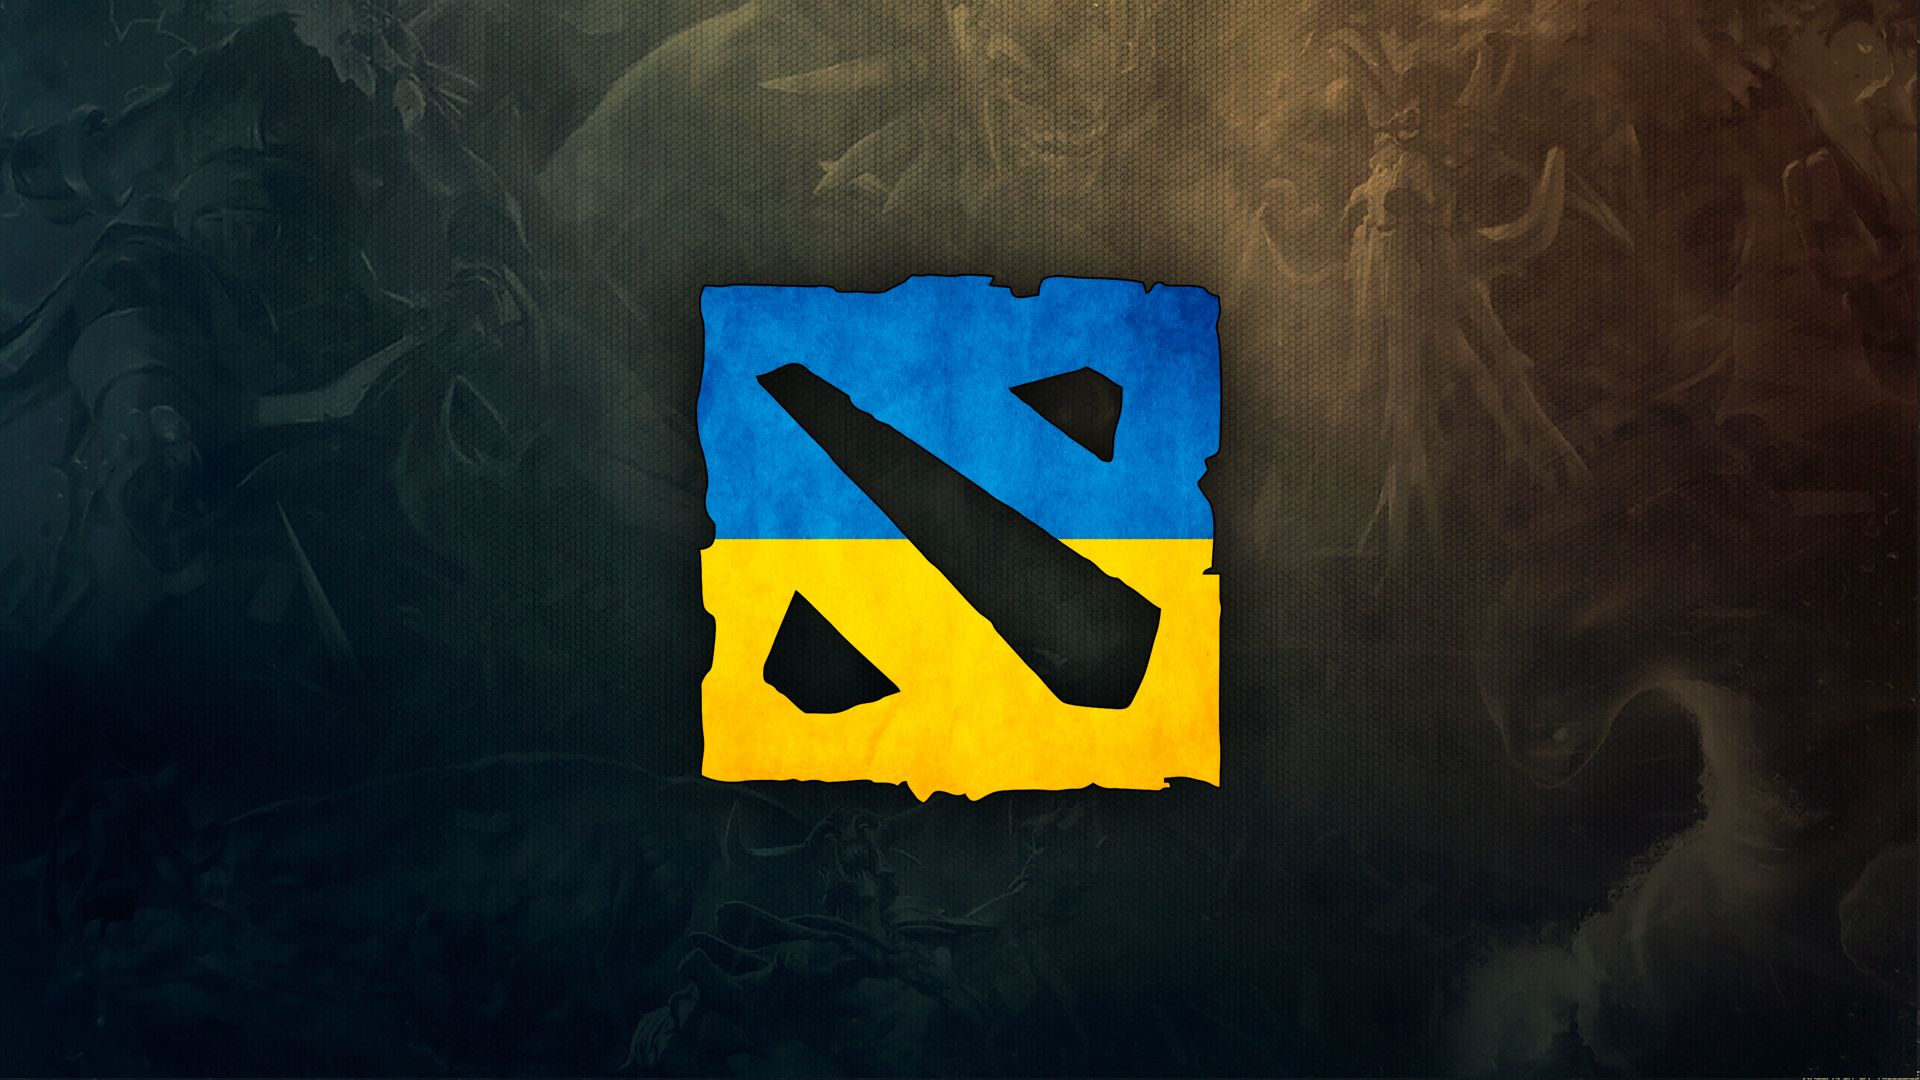 HD Wallpaper Of Dota 2 Ukraine Logo